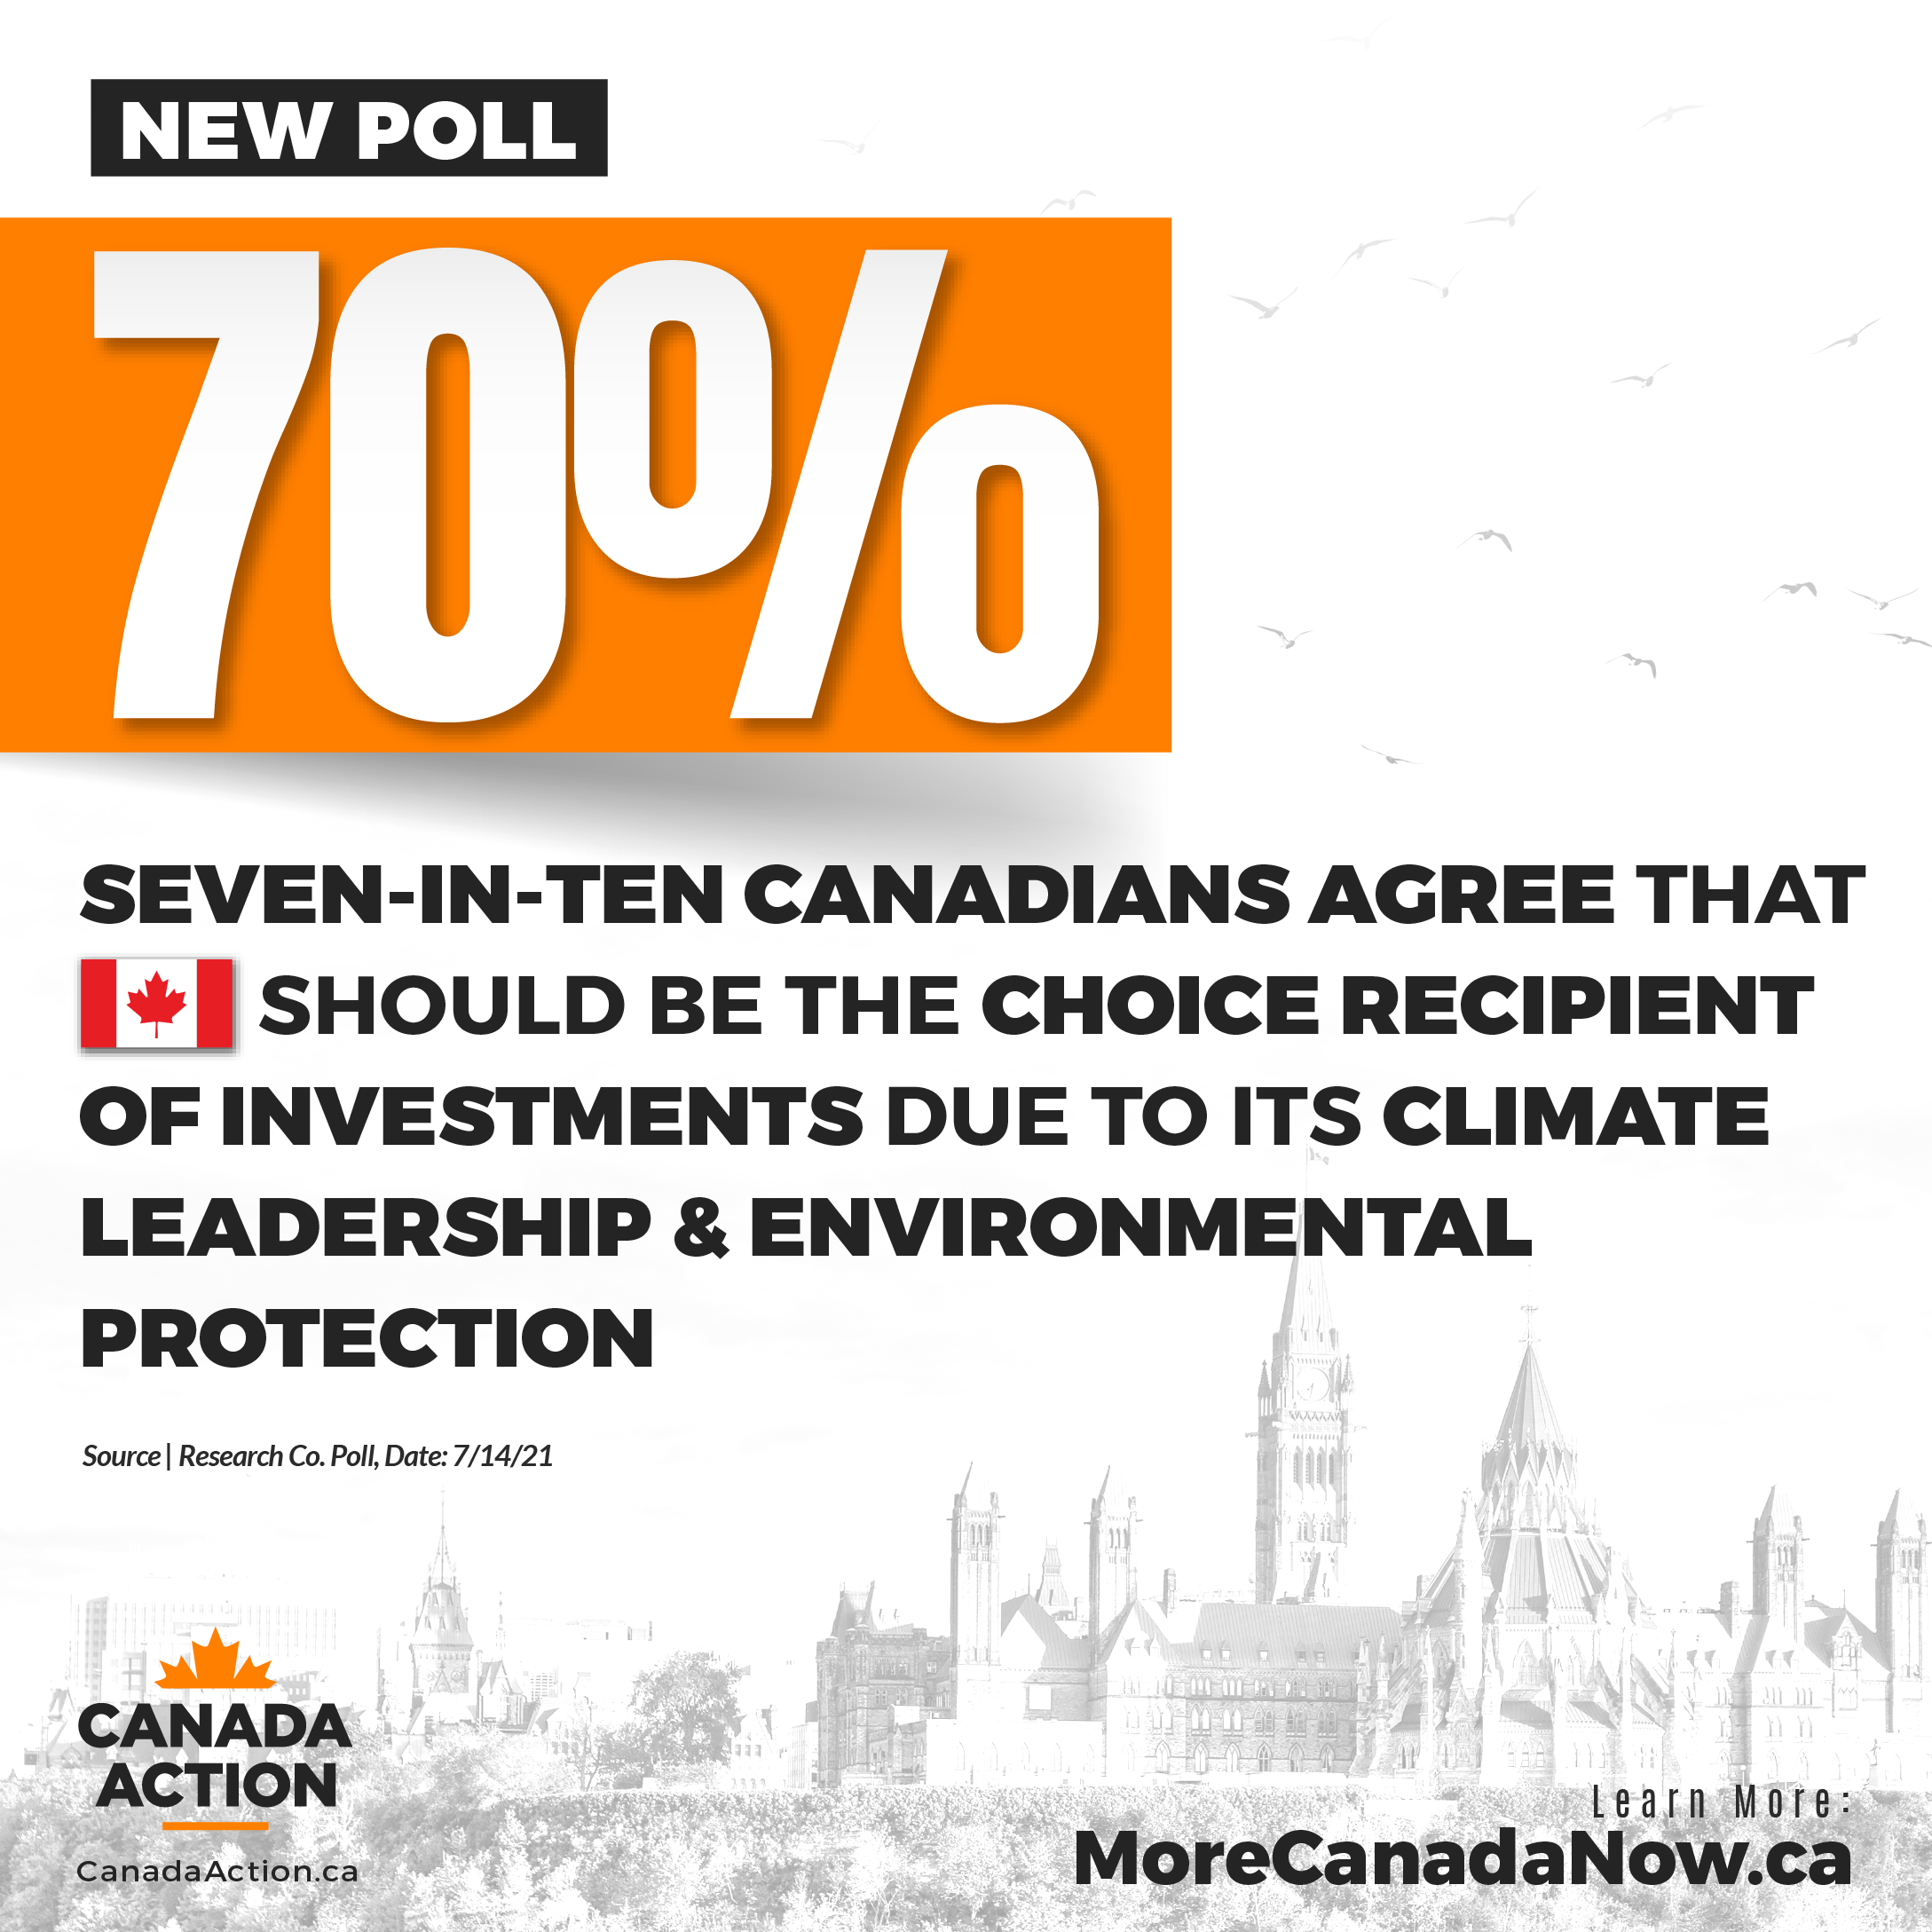 70% of Canadians believe Canada should be a choice recipient for investments due to ESG leadership